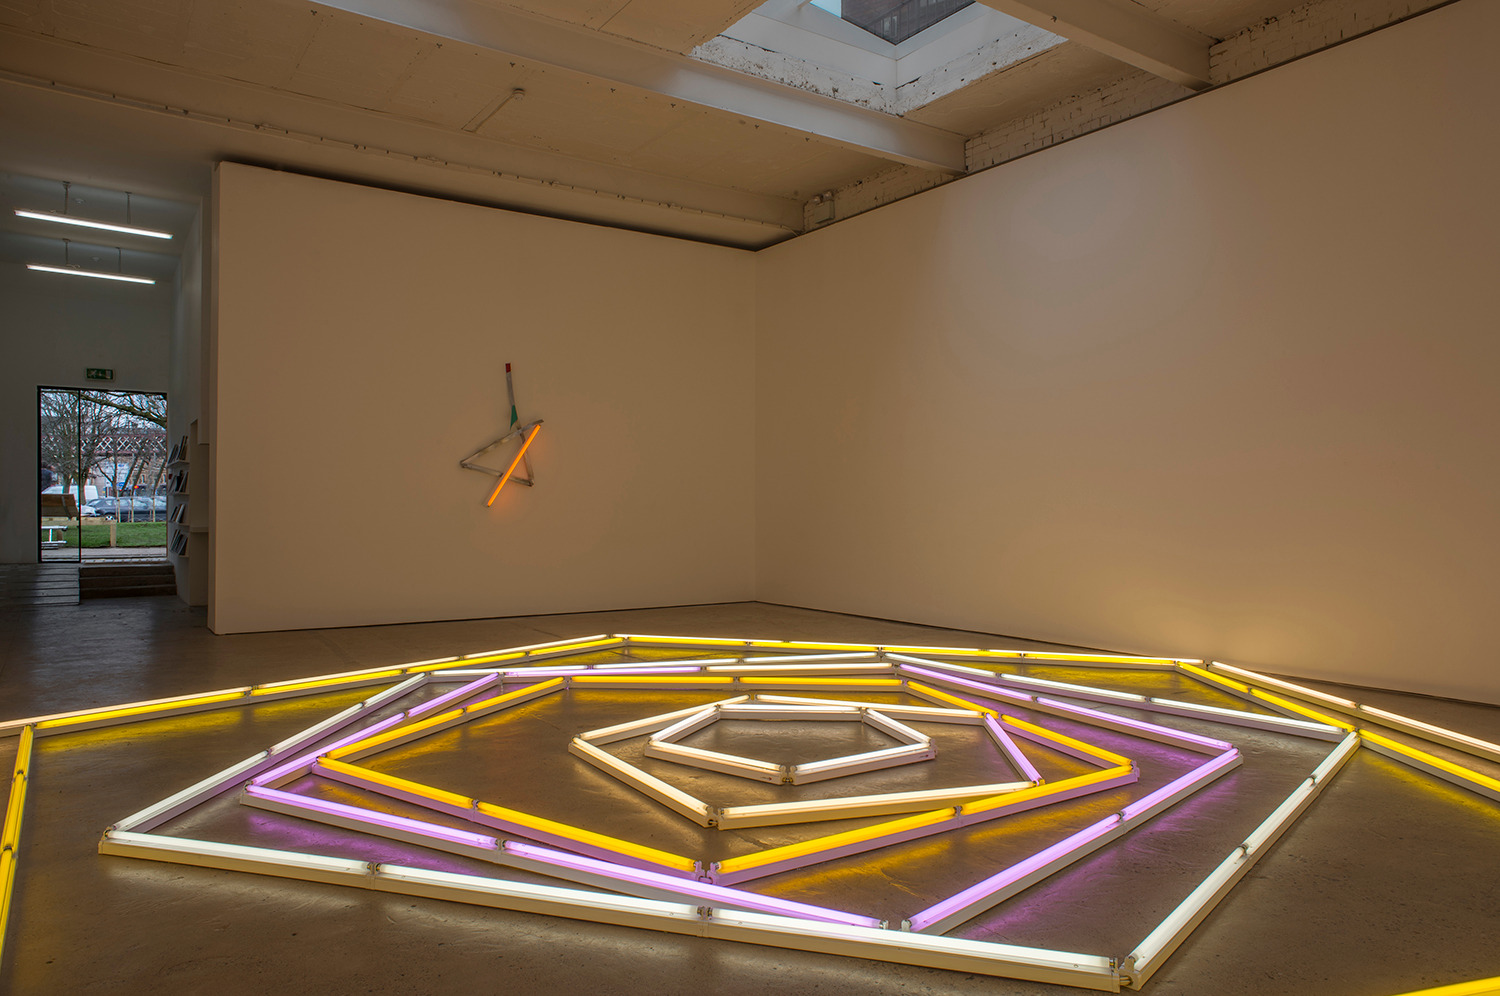 Installation view 'The Excentric Circle', The Modern Institute, Aird's Lane, Glasgow, 2015